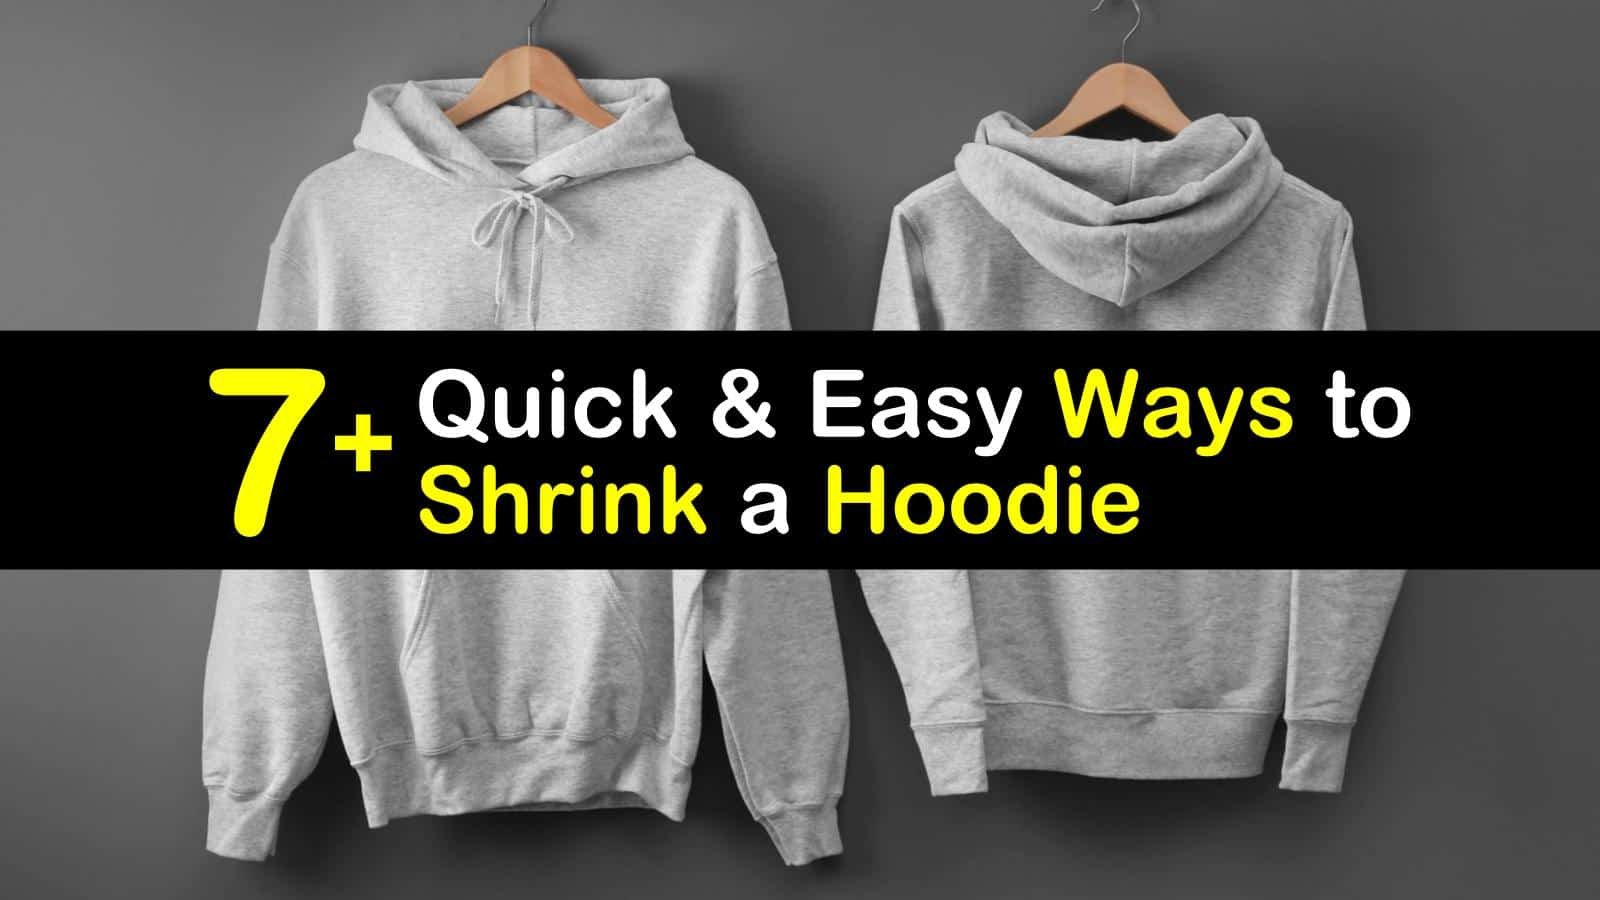 12+ Quick and Easy Ways to Shrink a Hoodie